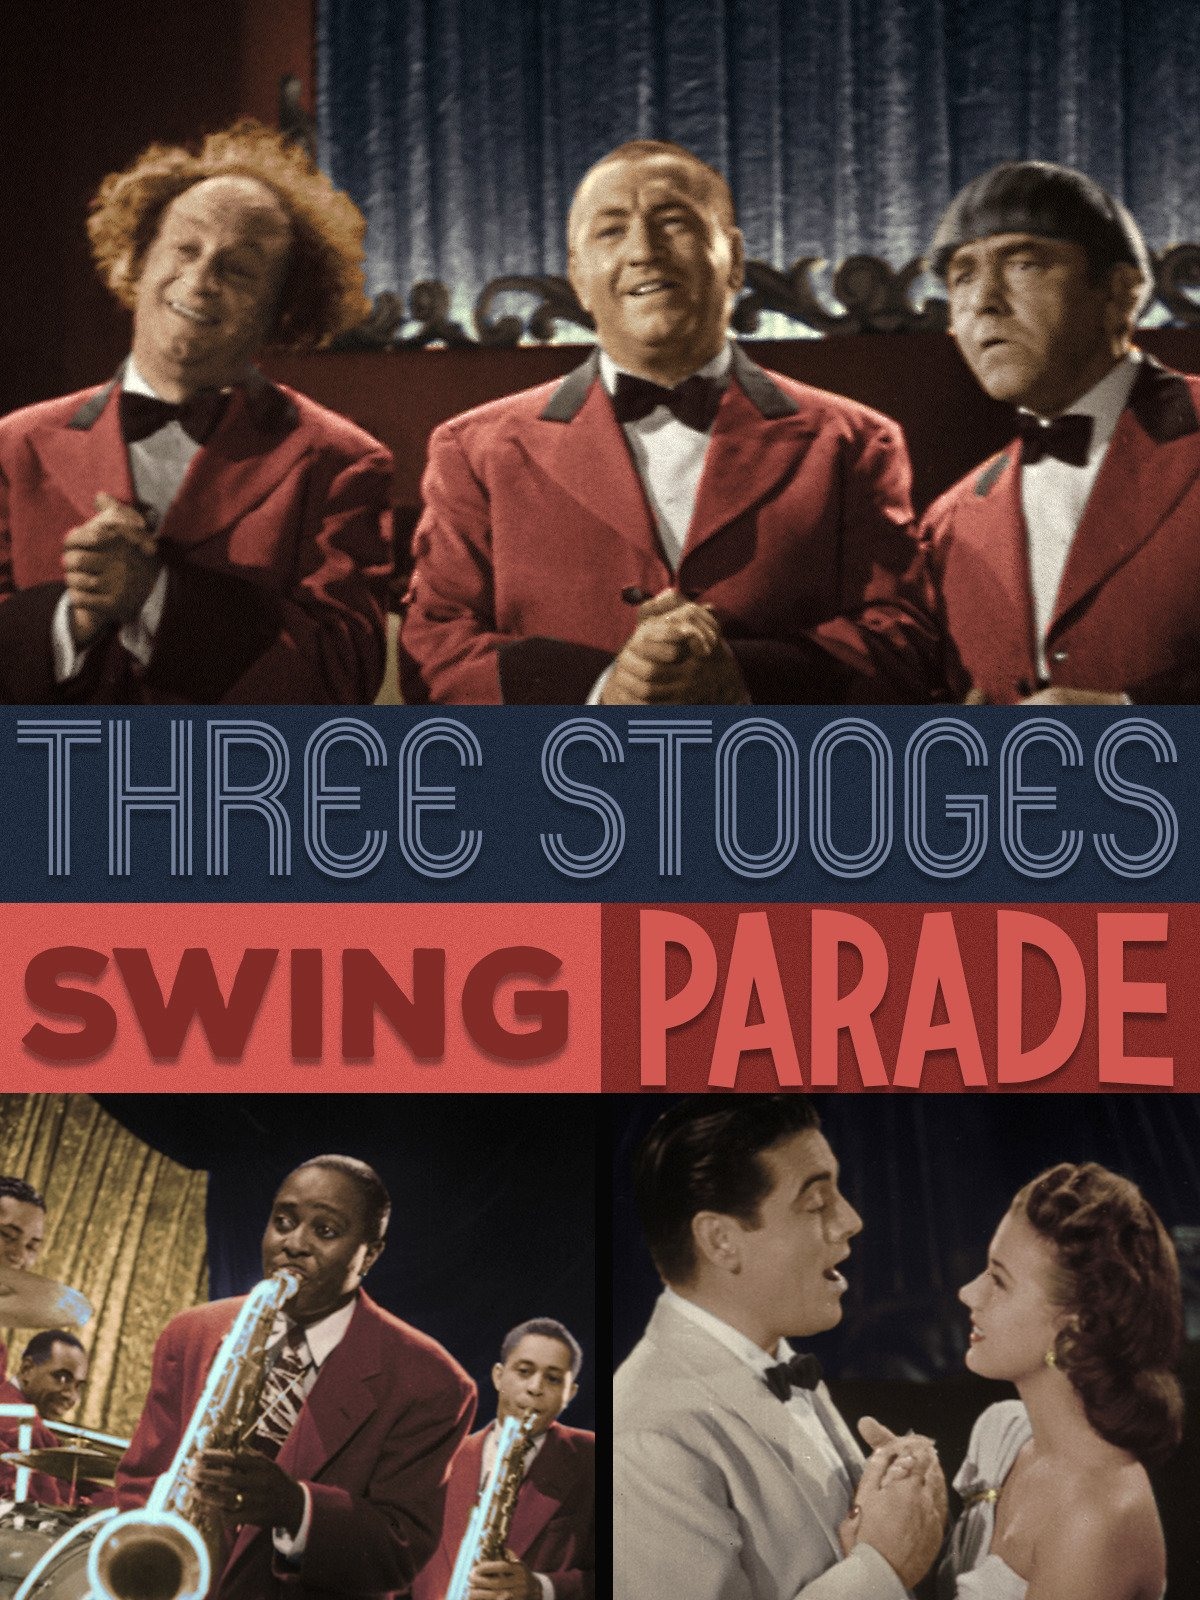 Three Stooges in Swing Parade